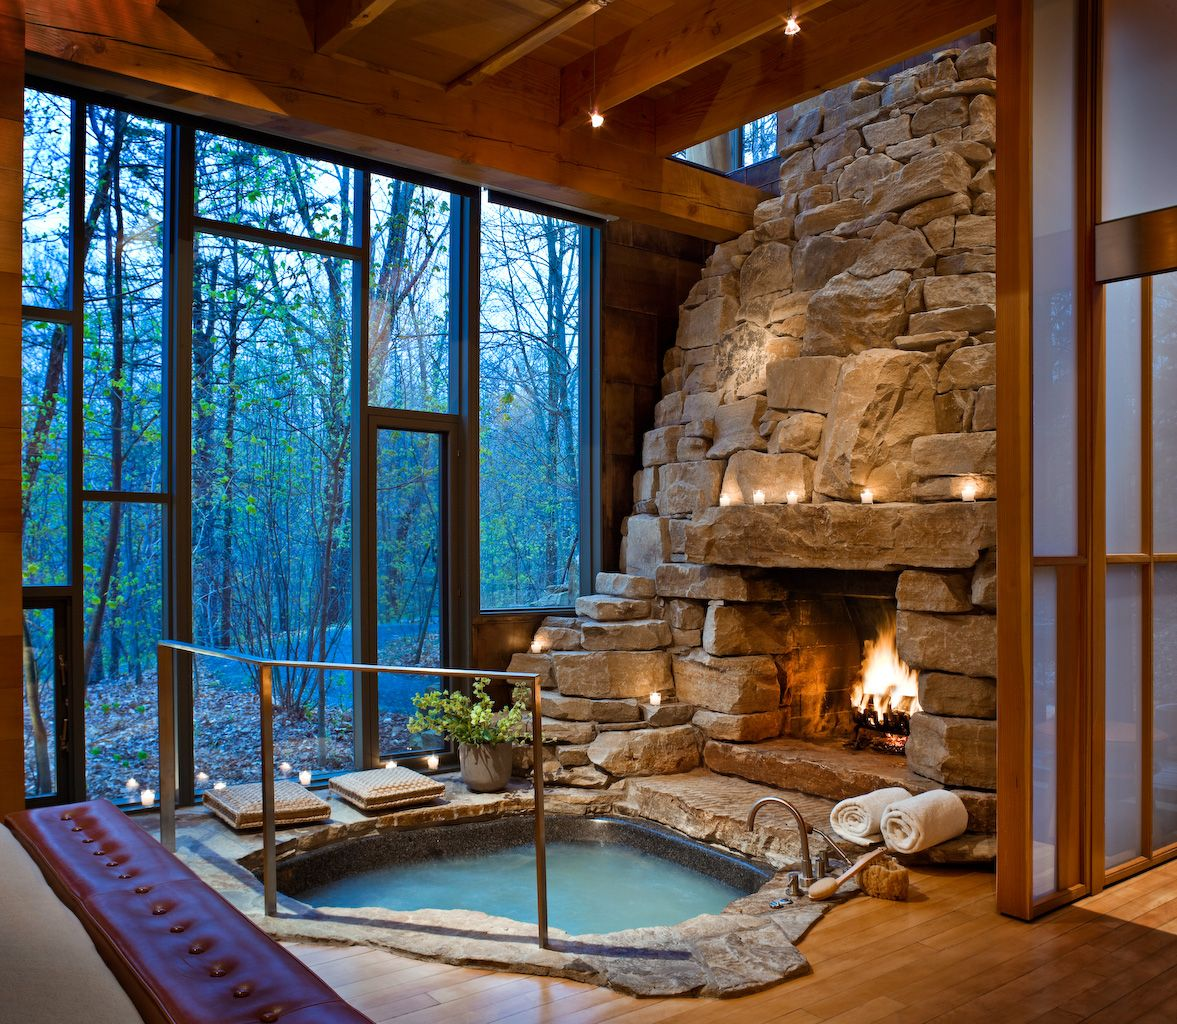 If You Can Book The Aviary Cottage A Triumph Of Steel And Glass Perfection With A Deep Set Hot Tub In Front Of T Indoor Hot Tub Dream House Indoor Fireplace